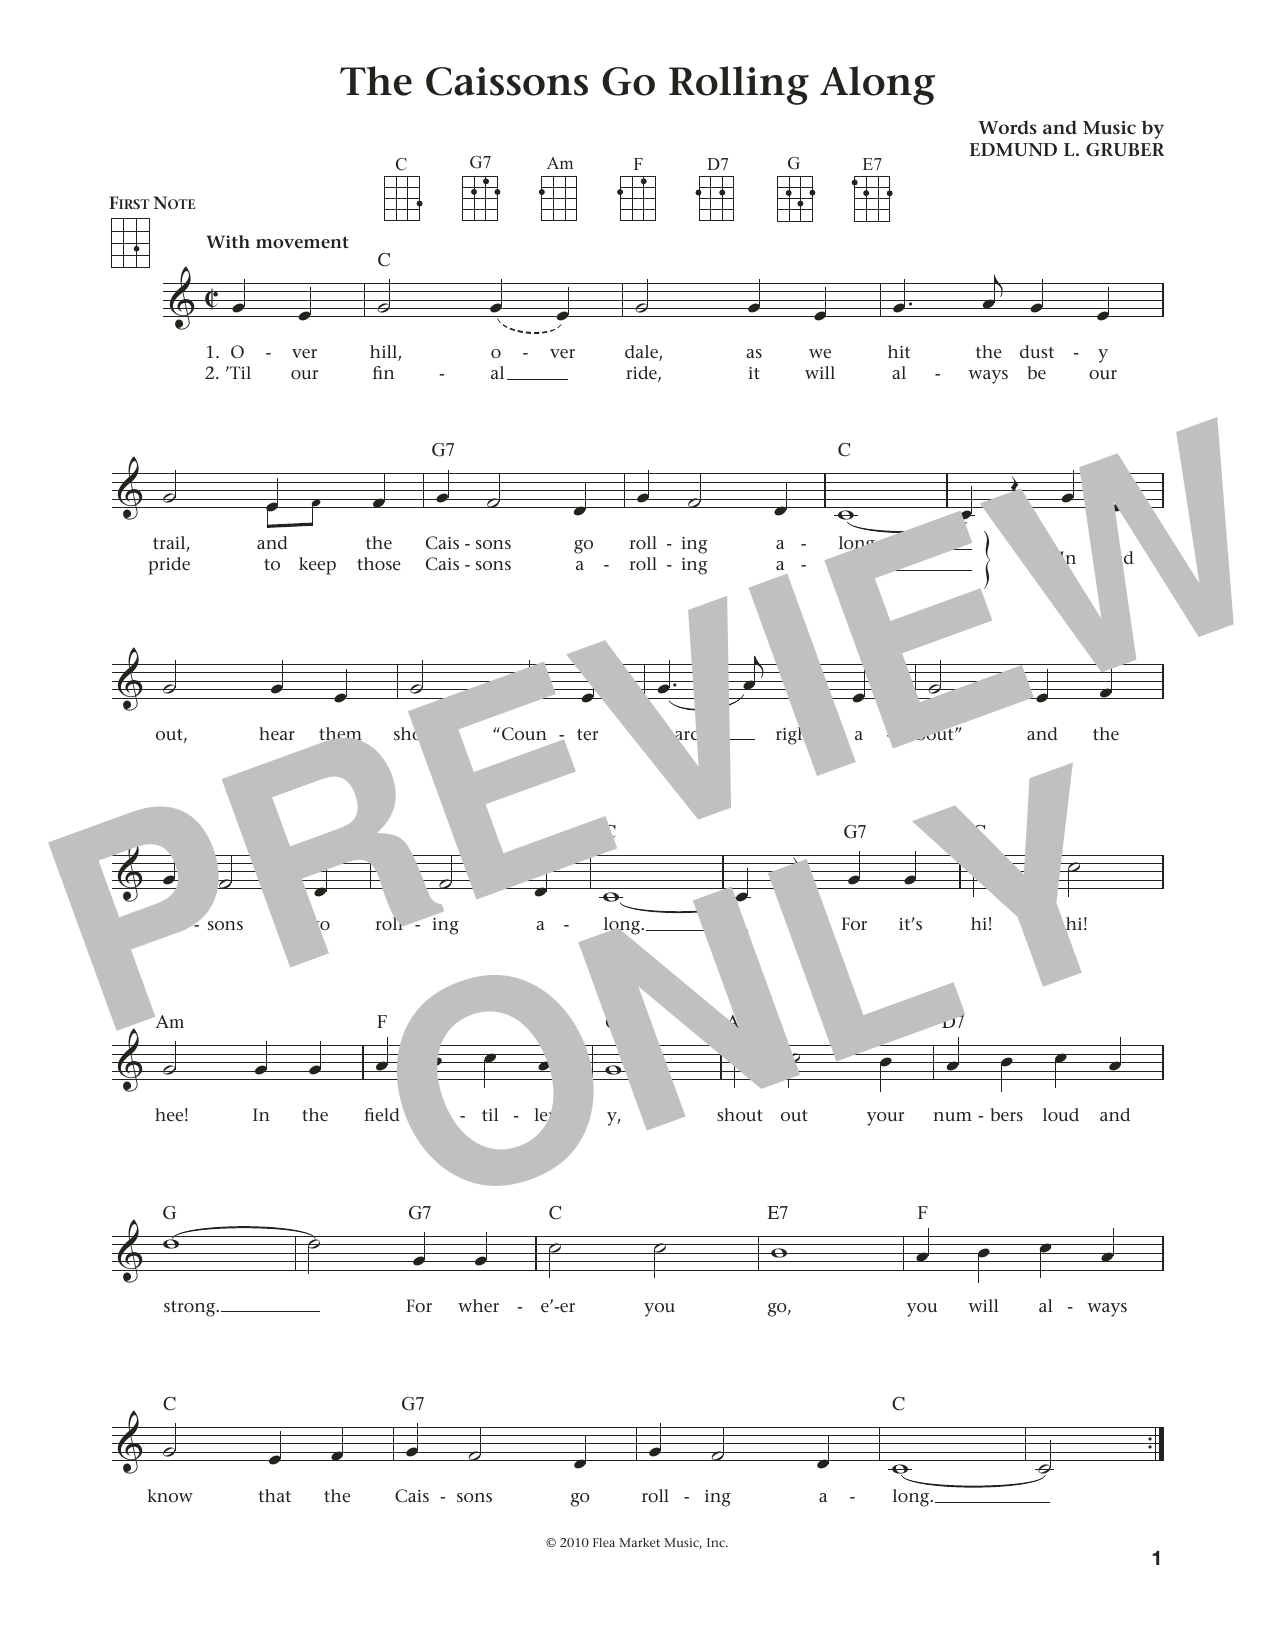 Sheet Music Digital Files To Print Licensed Traditional Digital